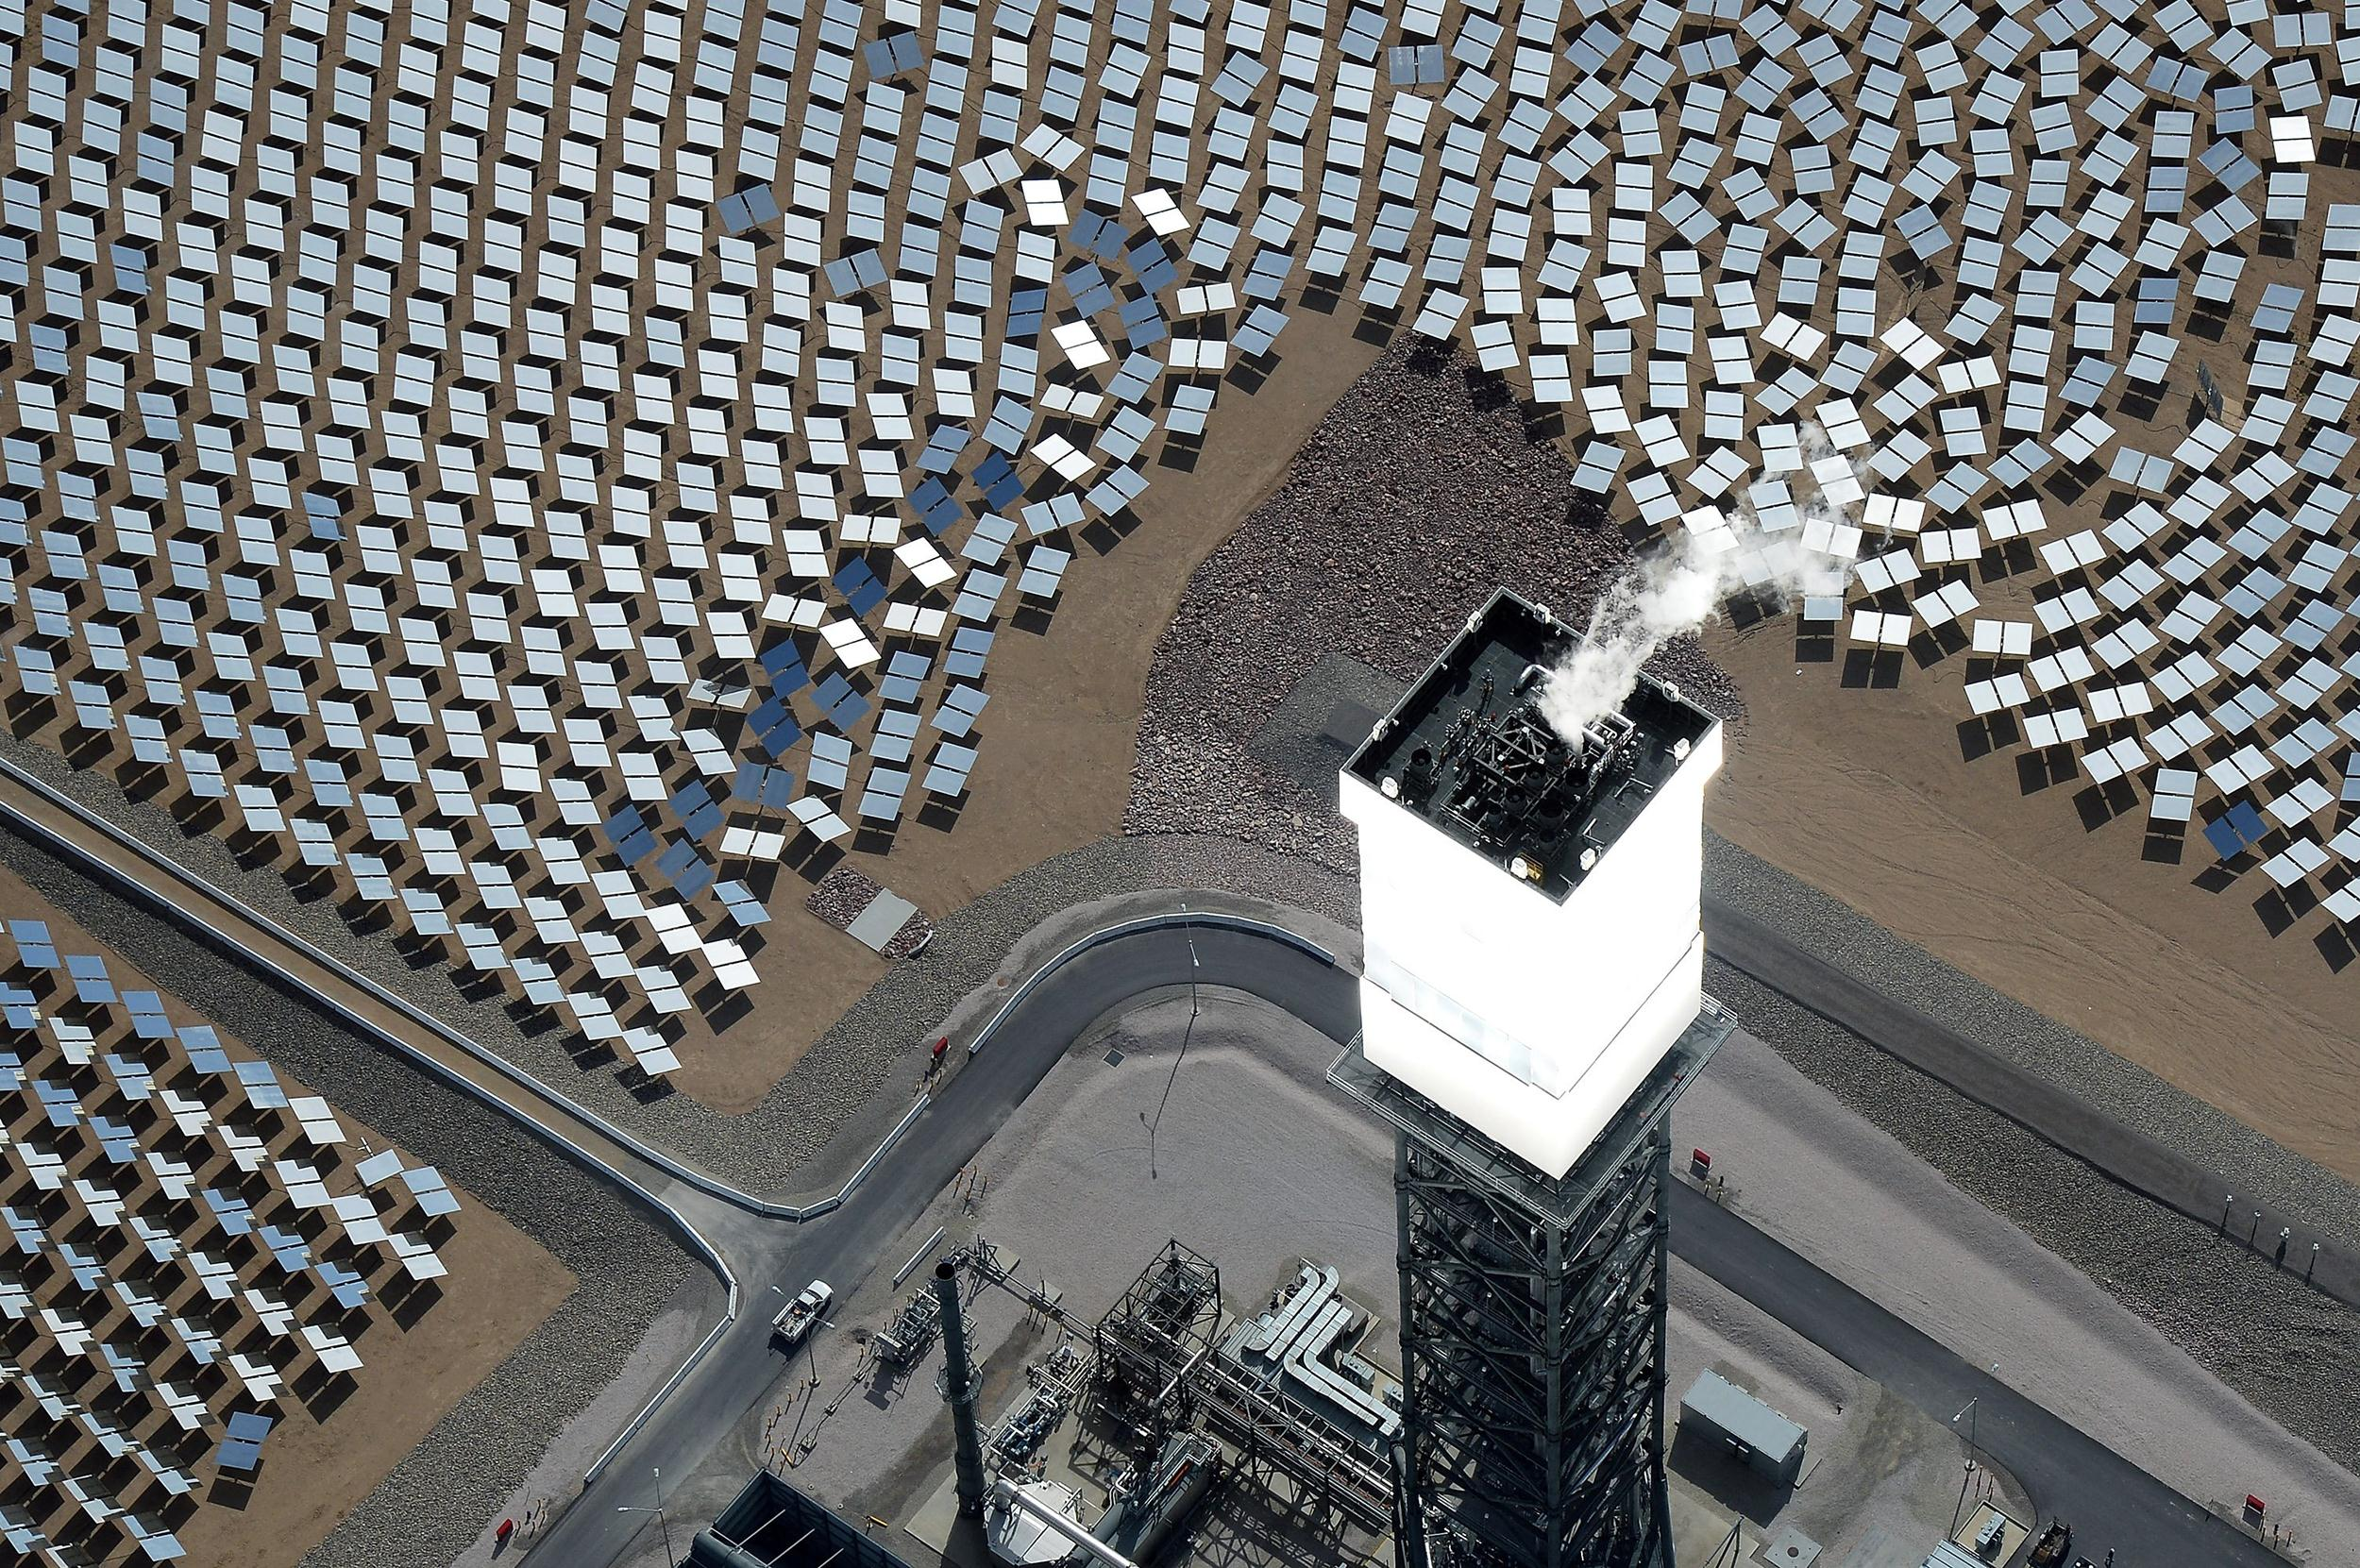 Image: Solar powered BrightSource Energy plant